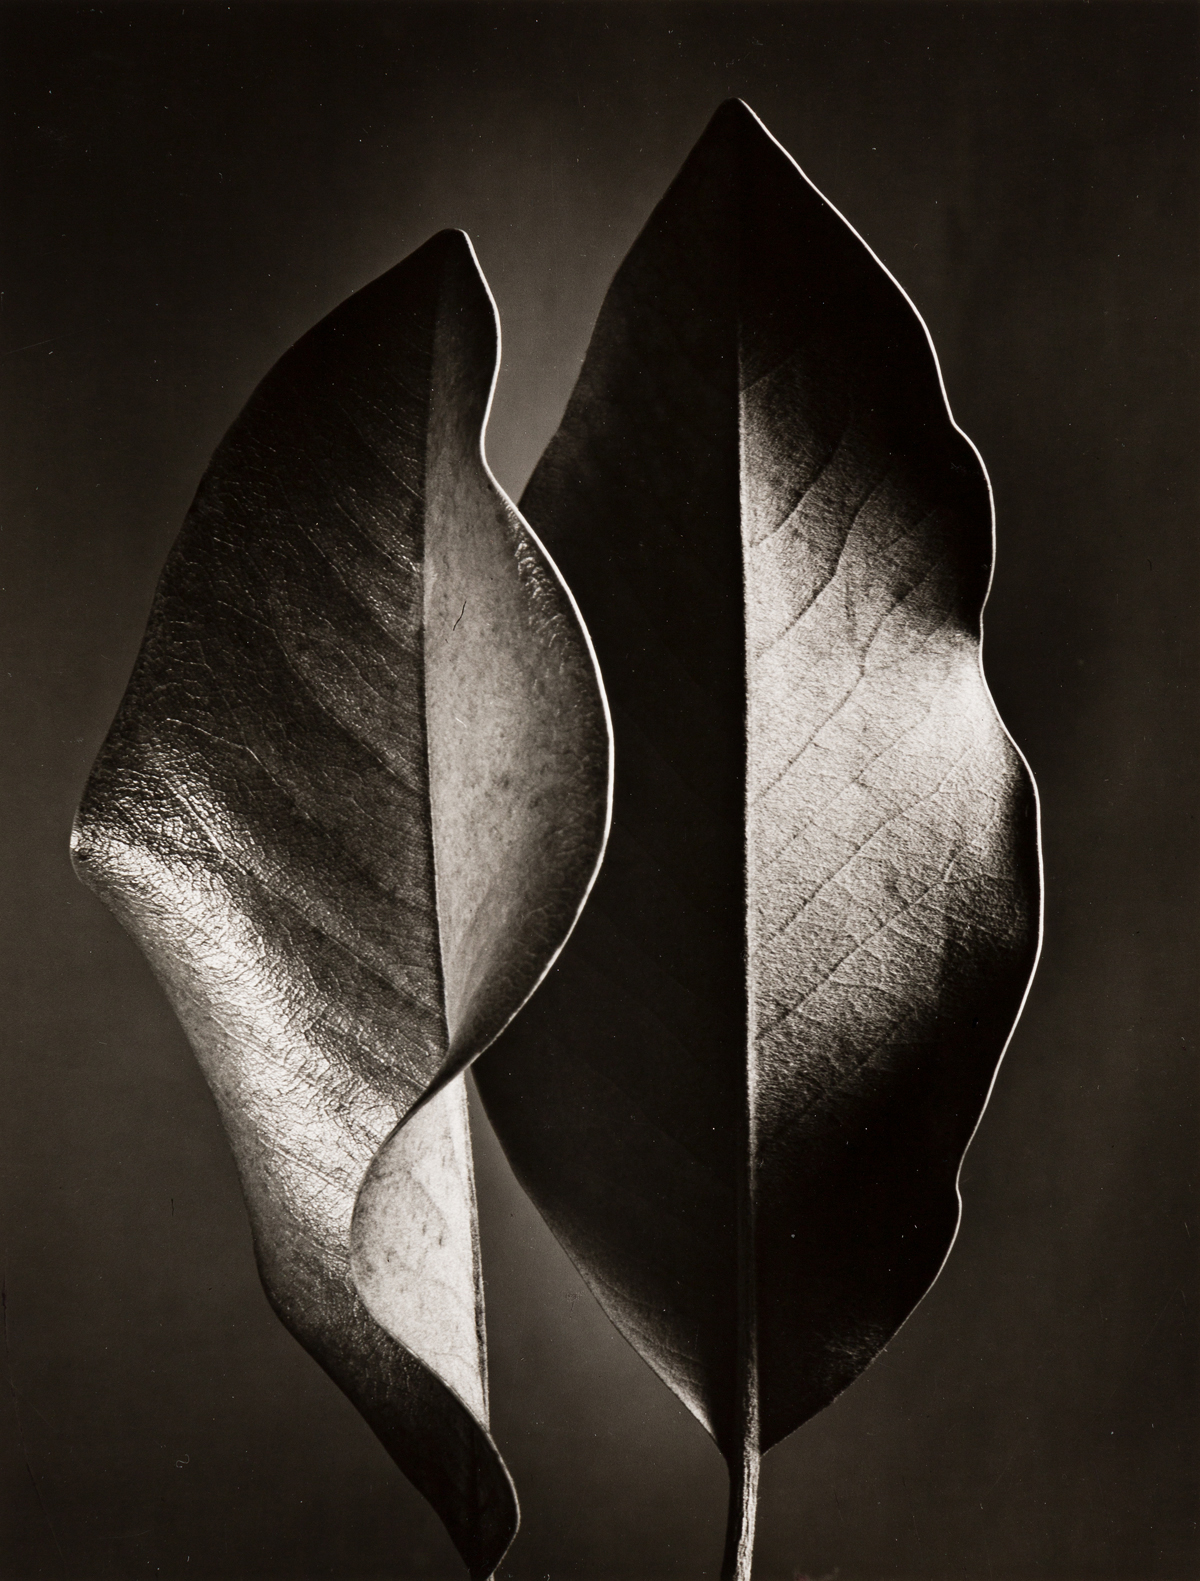 RUTH BERNHARD (1905-2006) The Gift of the Commonplace, a portfolio of 10 photographs dedicated to the memory of Edward Weston.